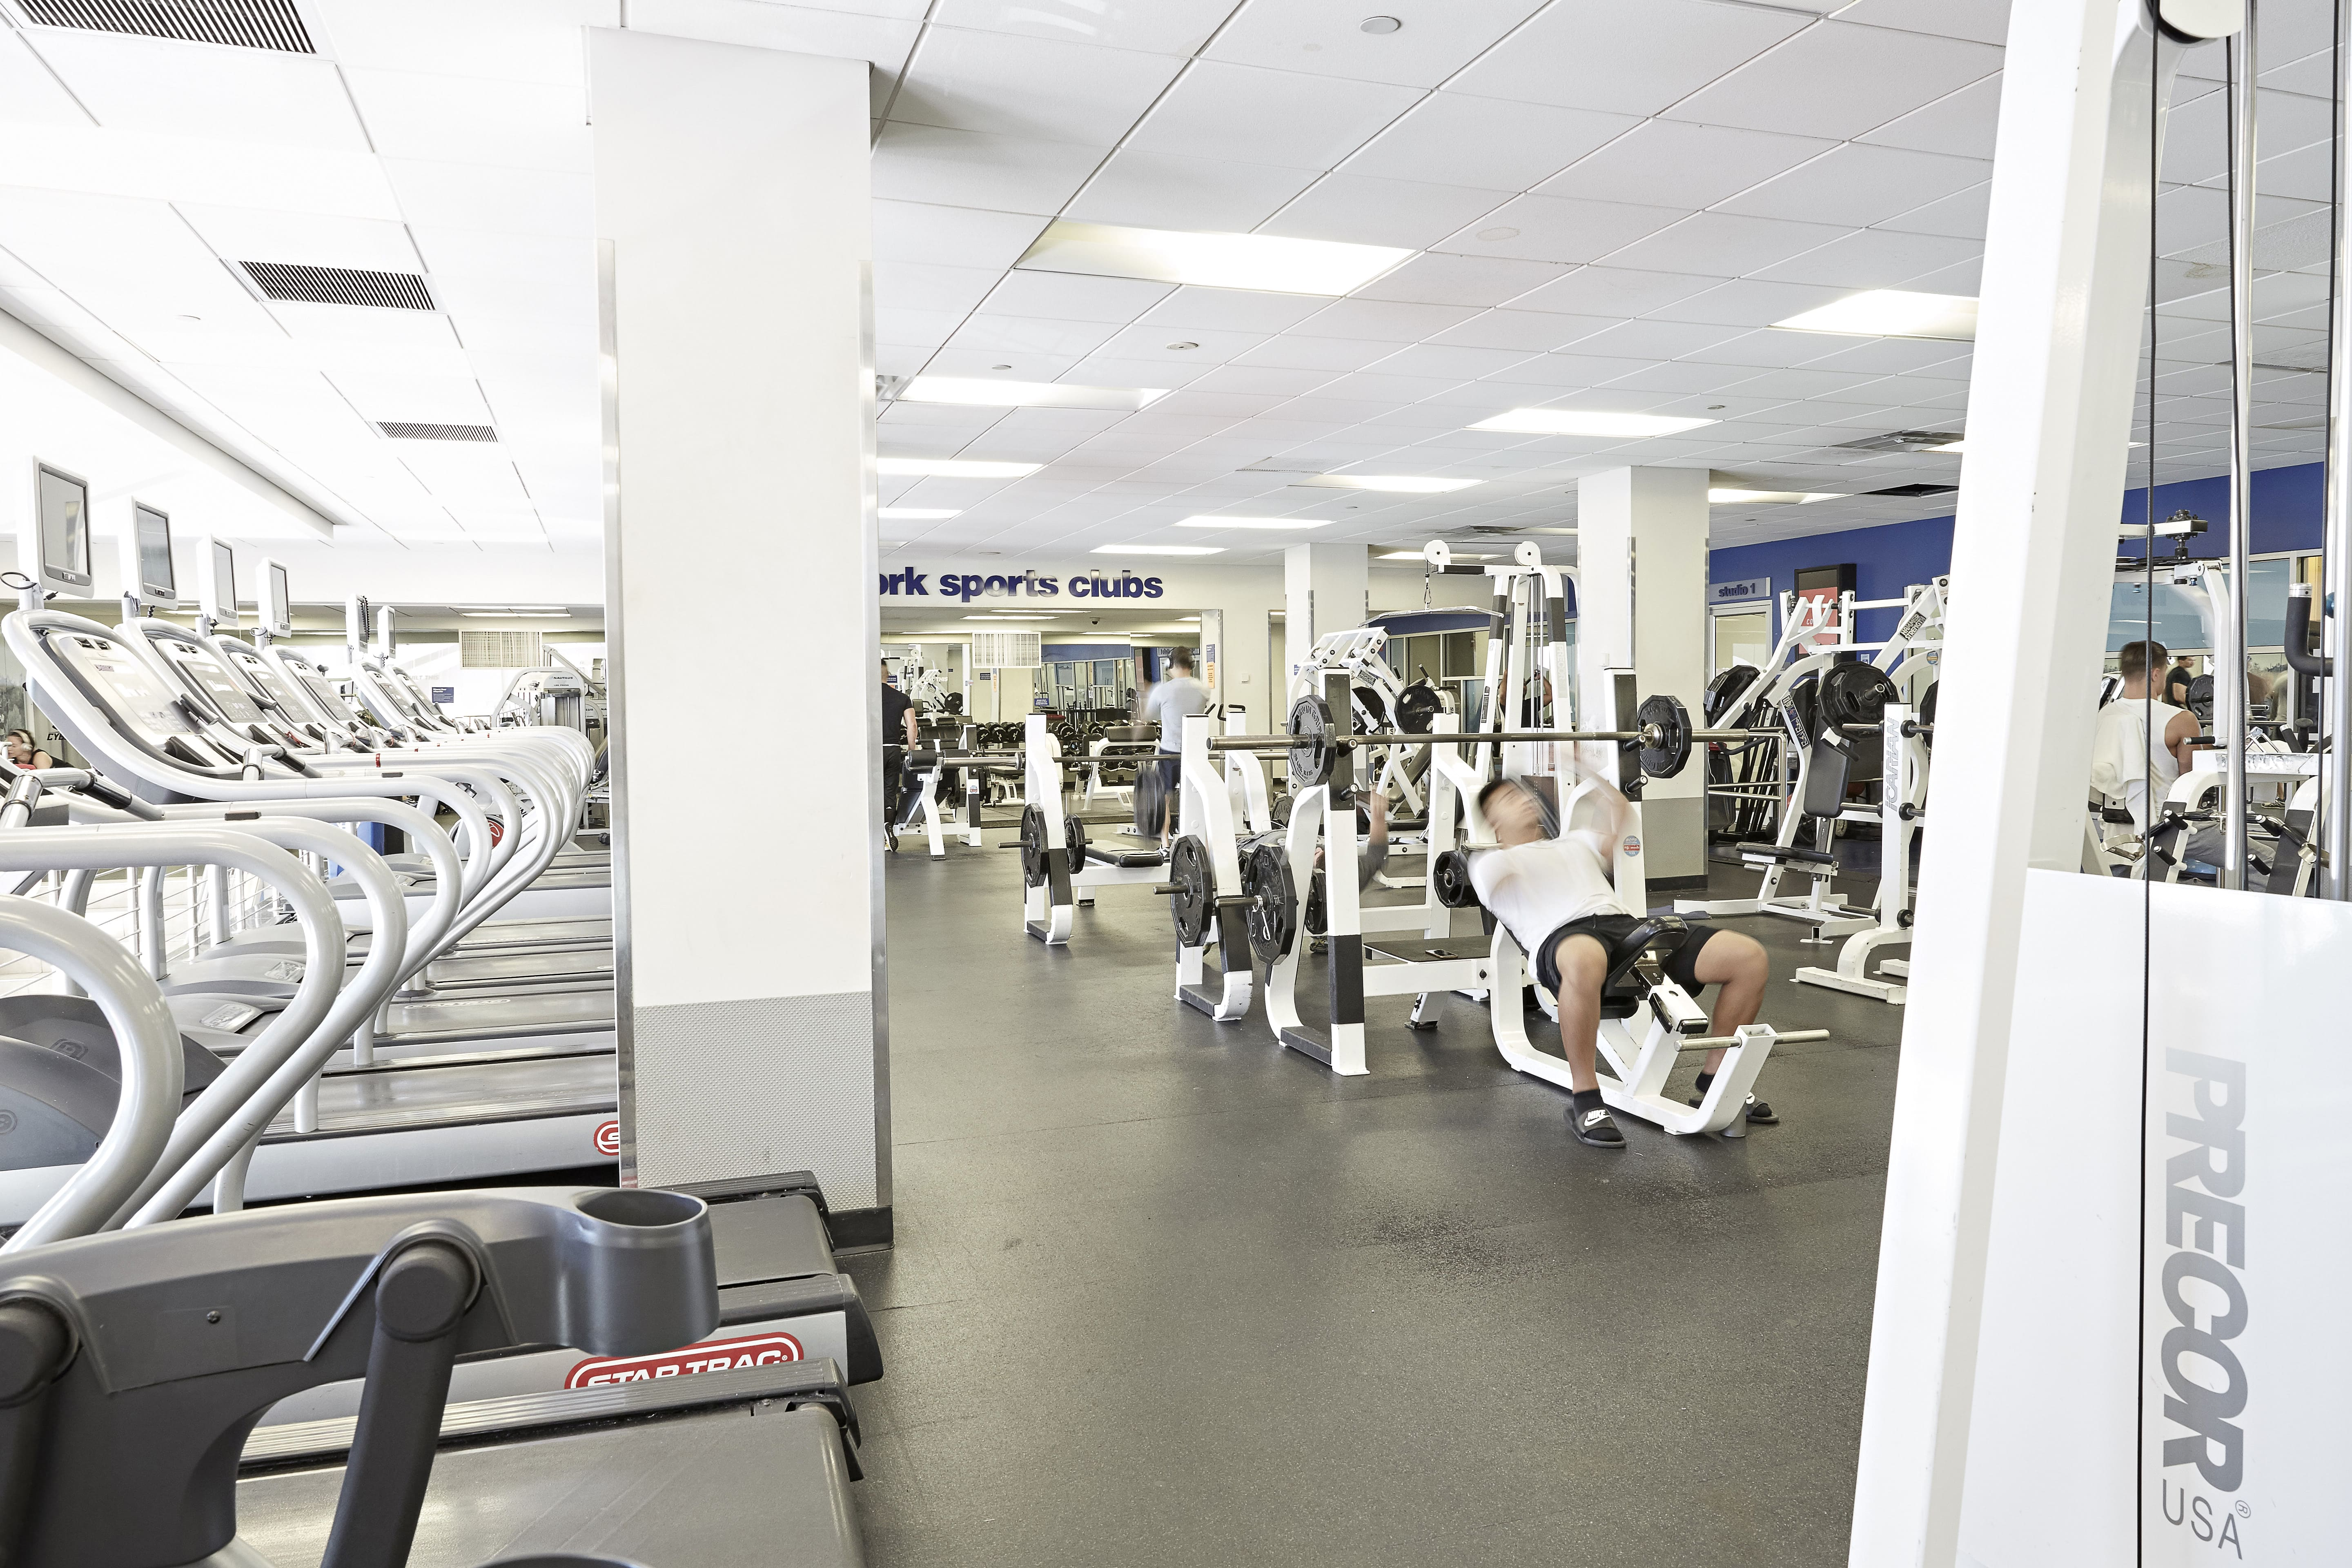 New York Sports Clubs image 13